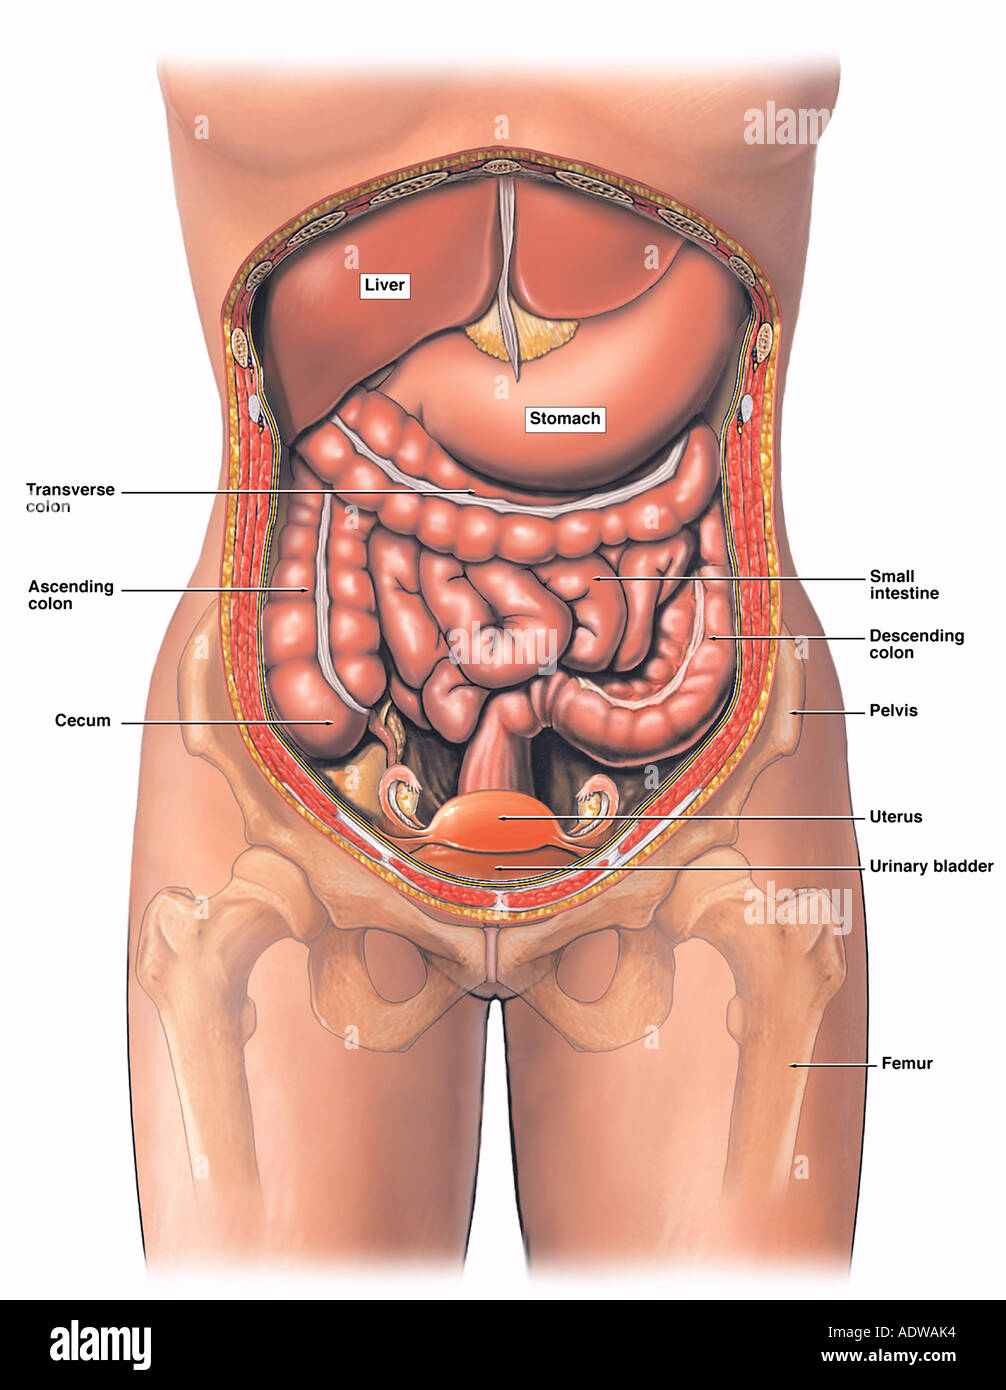 Abdominal Anatomy Stock Photos Abdominal Anatomy Stock Images Alamy